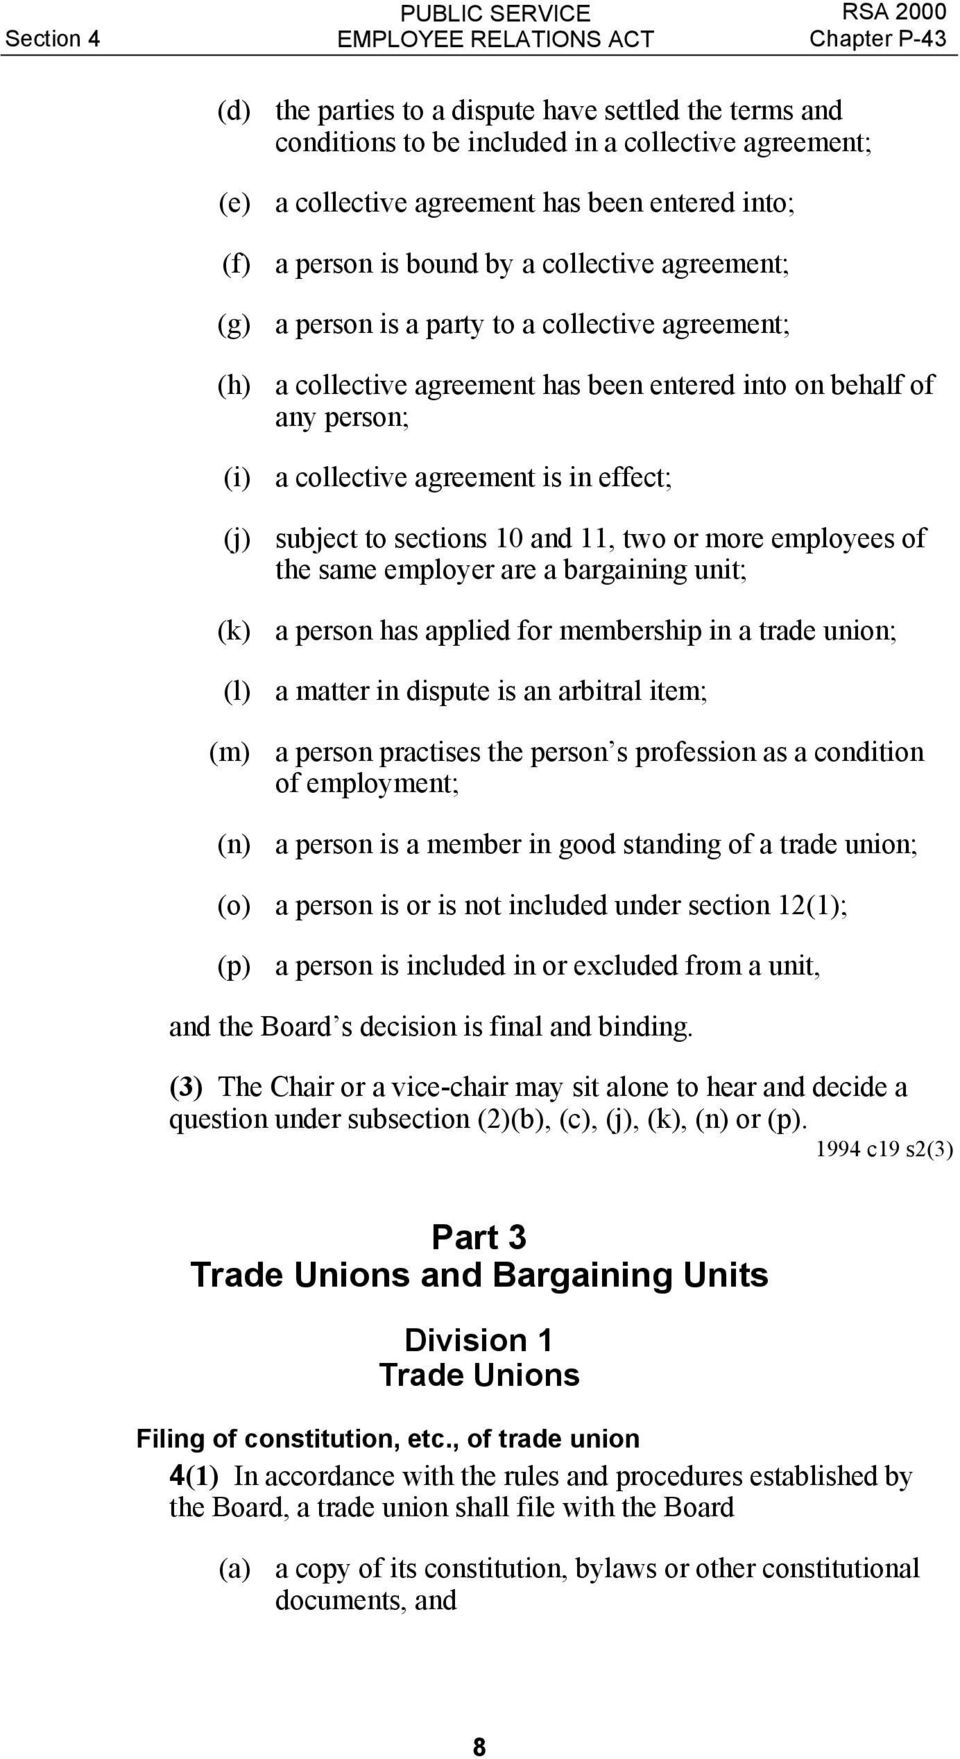 in effect; (j) subject to sections 10 and 11, two or more employees of the same employer are a bargaining unit; (k) a person has applied for membership in a trade union; (l) a matter in dispute is an